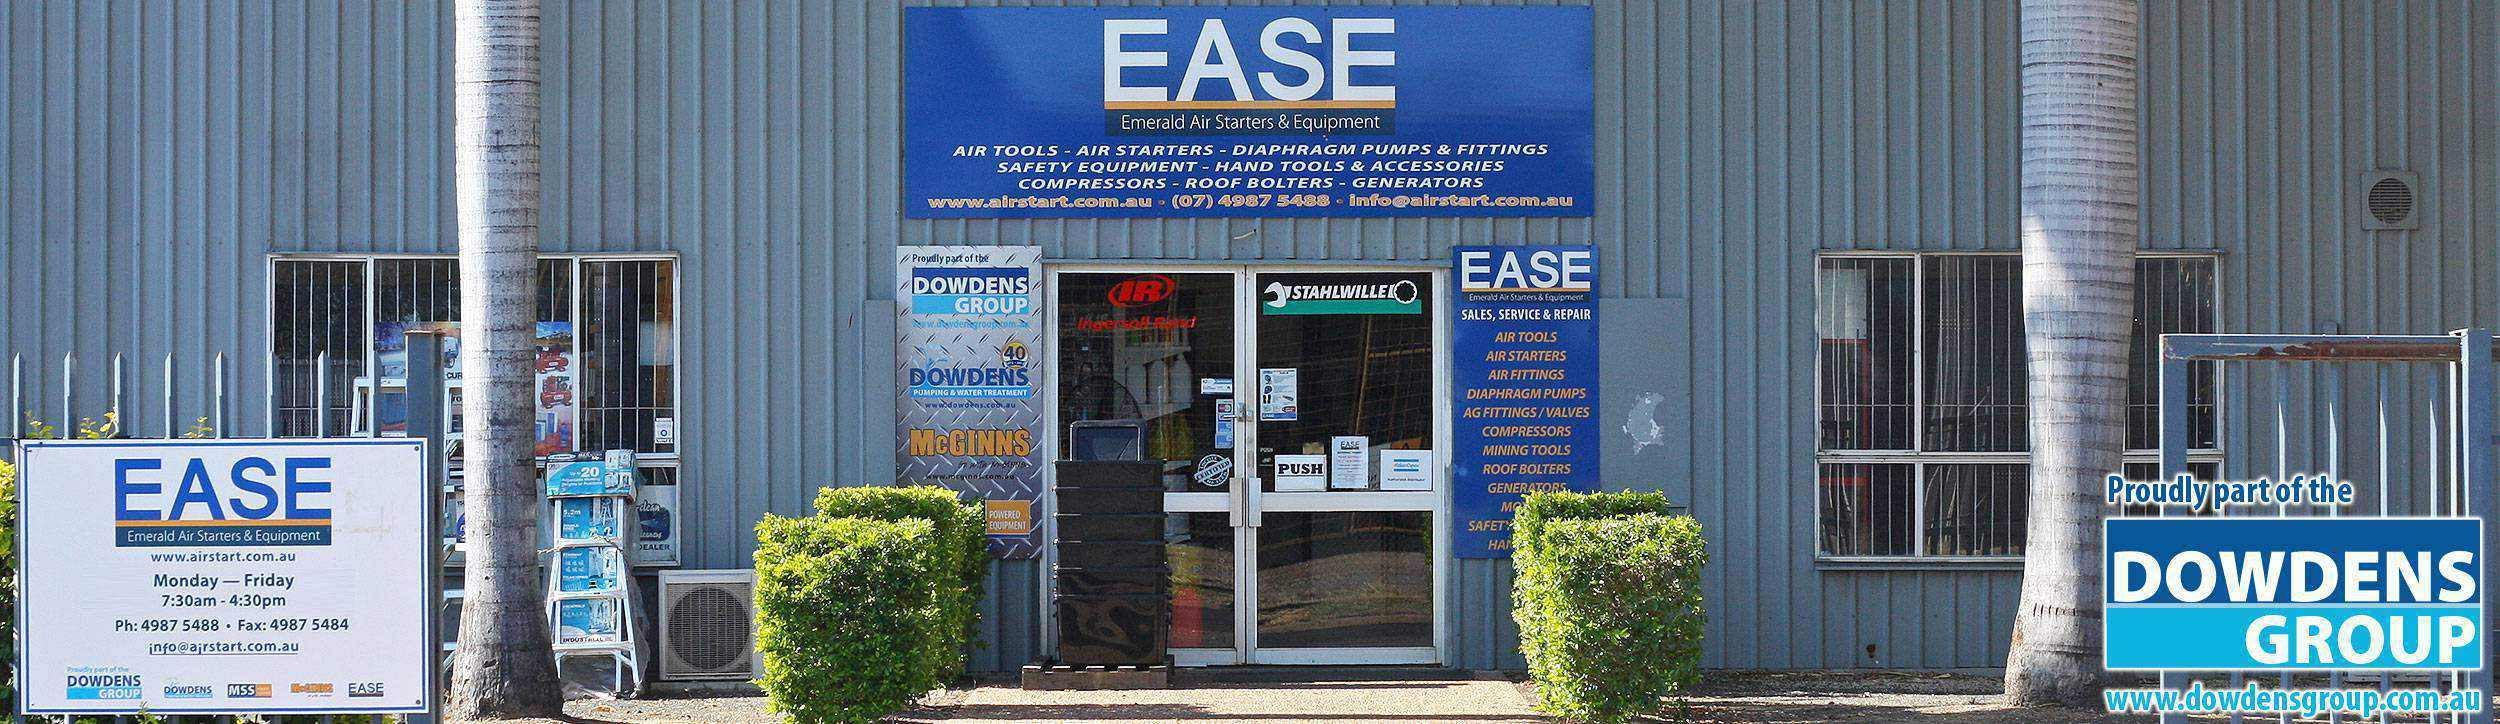 ease_about-us-page_header